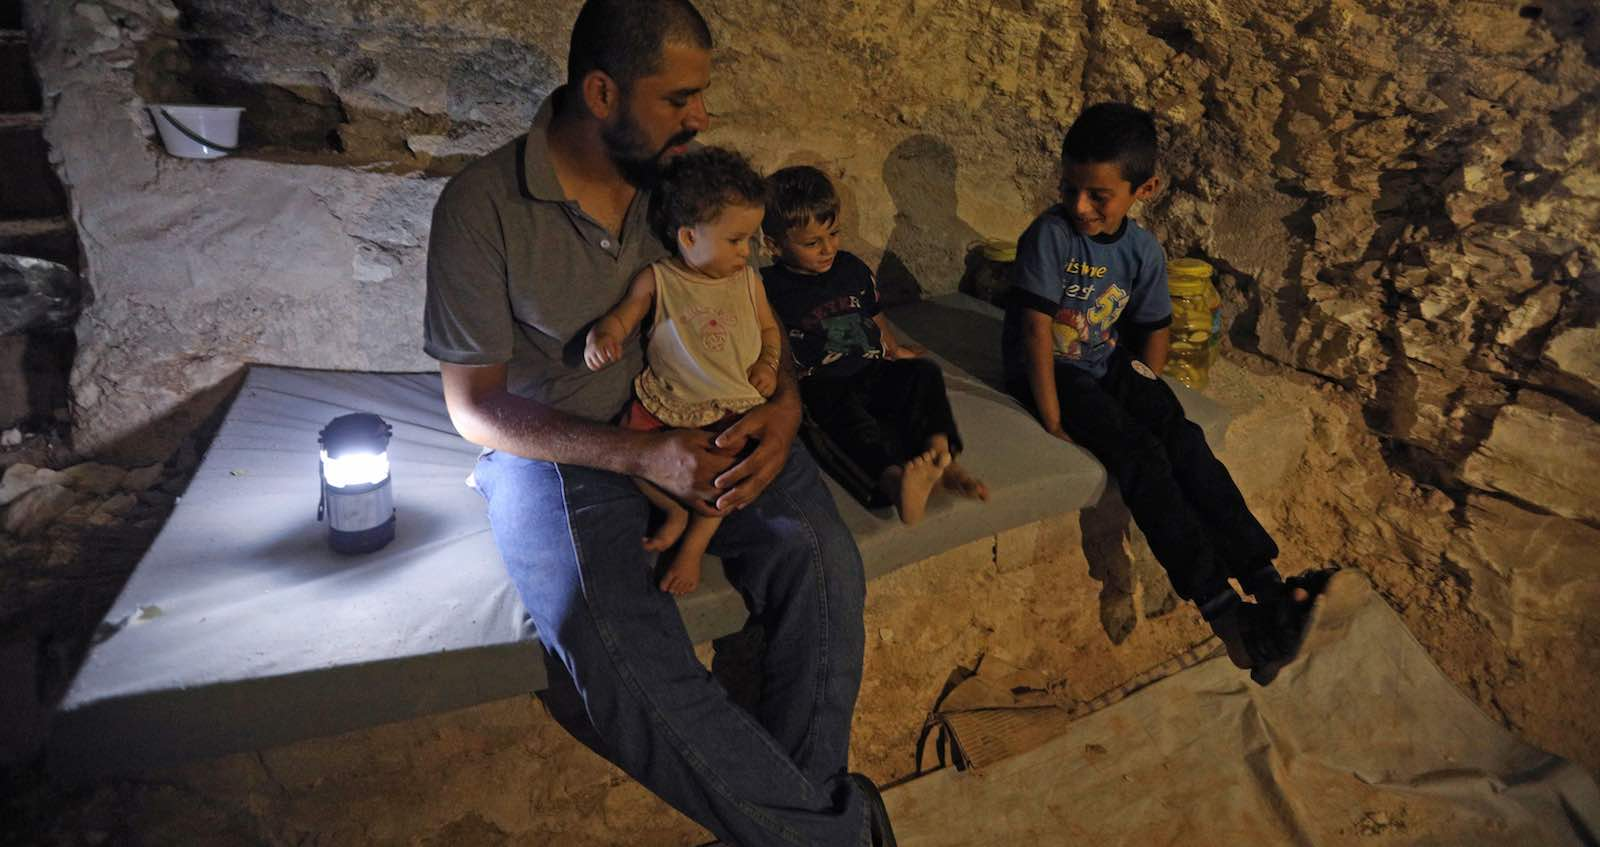 A family in an underground bunker, preparing for strikes in Idlib province, Syria (`Photo: Omar Haj Kadour via Getty)